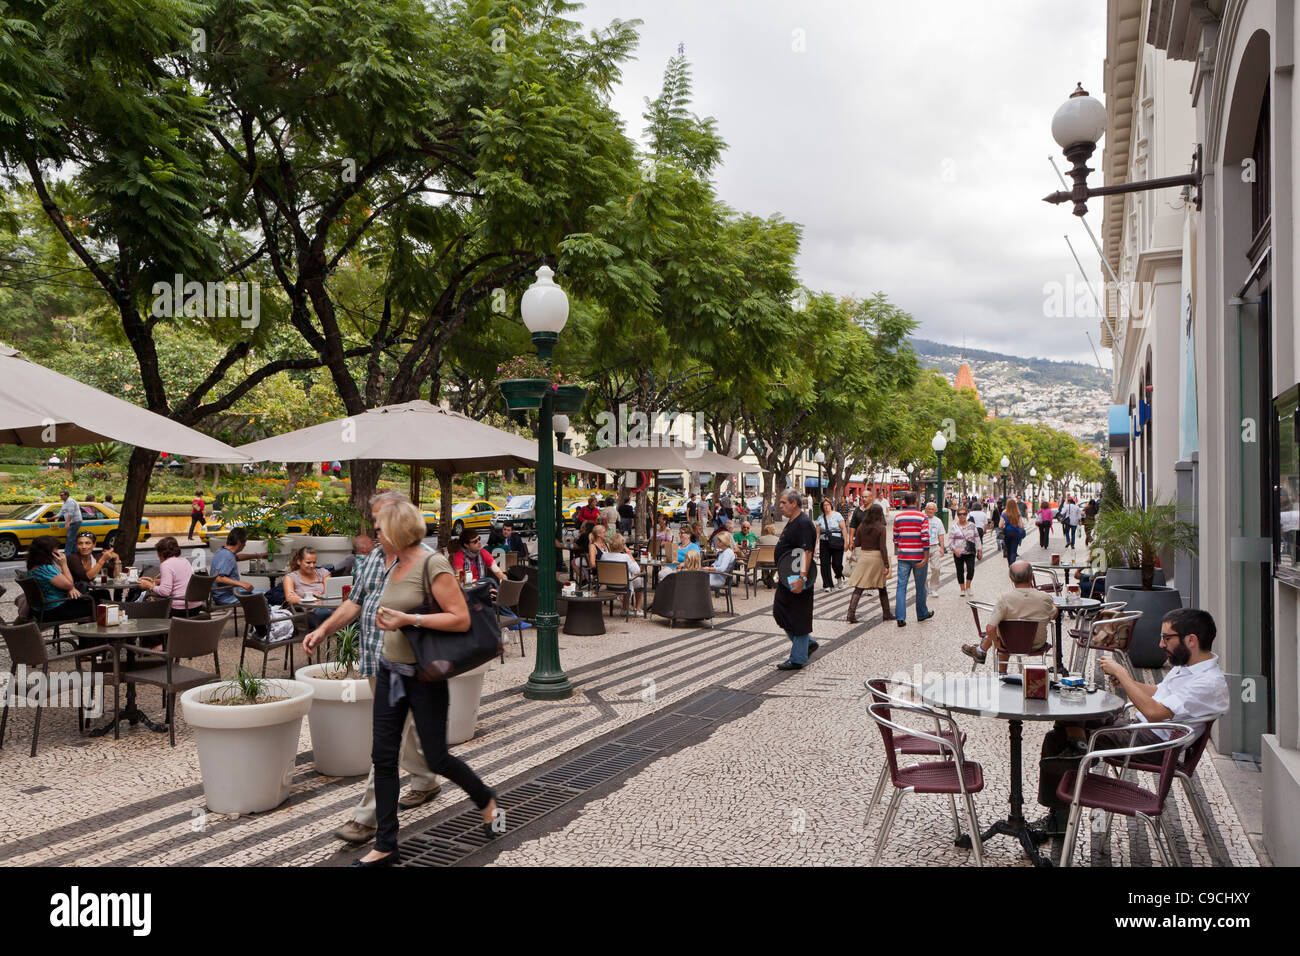 Street in Funchal, Madeira, Portugal, Europe - Stock Image